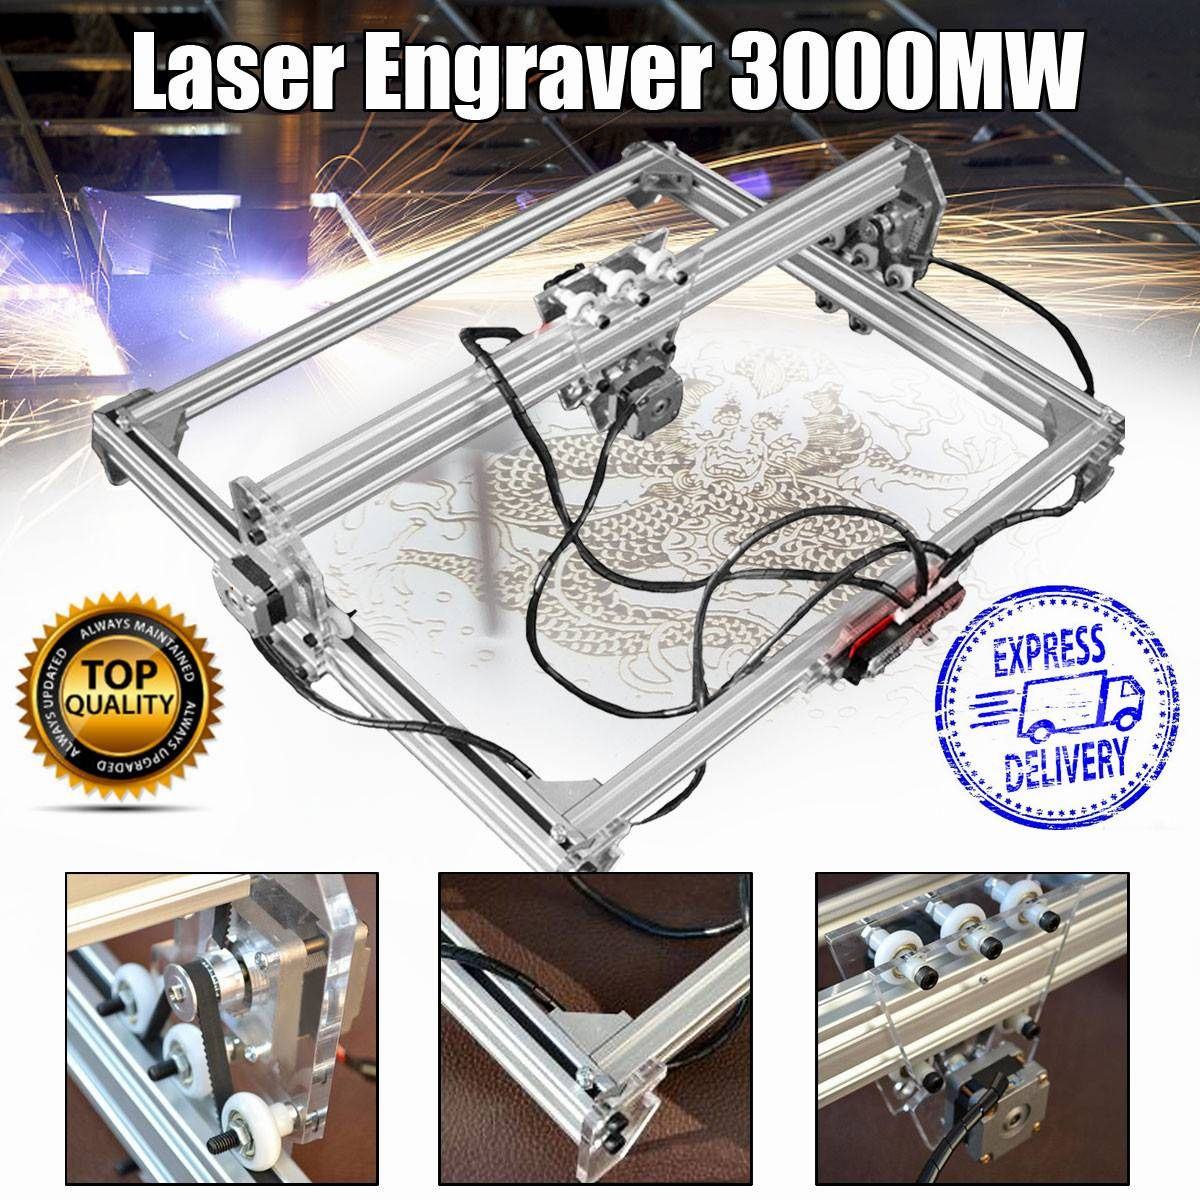 50*65cm Mini 3000MW Blue Laser Engraving Engraver Machine DC 12V DIY Desktop Wood Cutter/Printer/Power Adjustable+ Laser Goggles